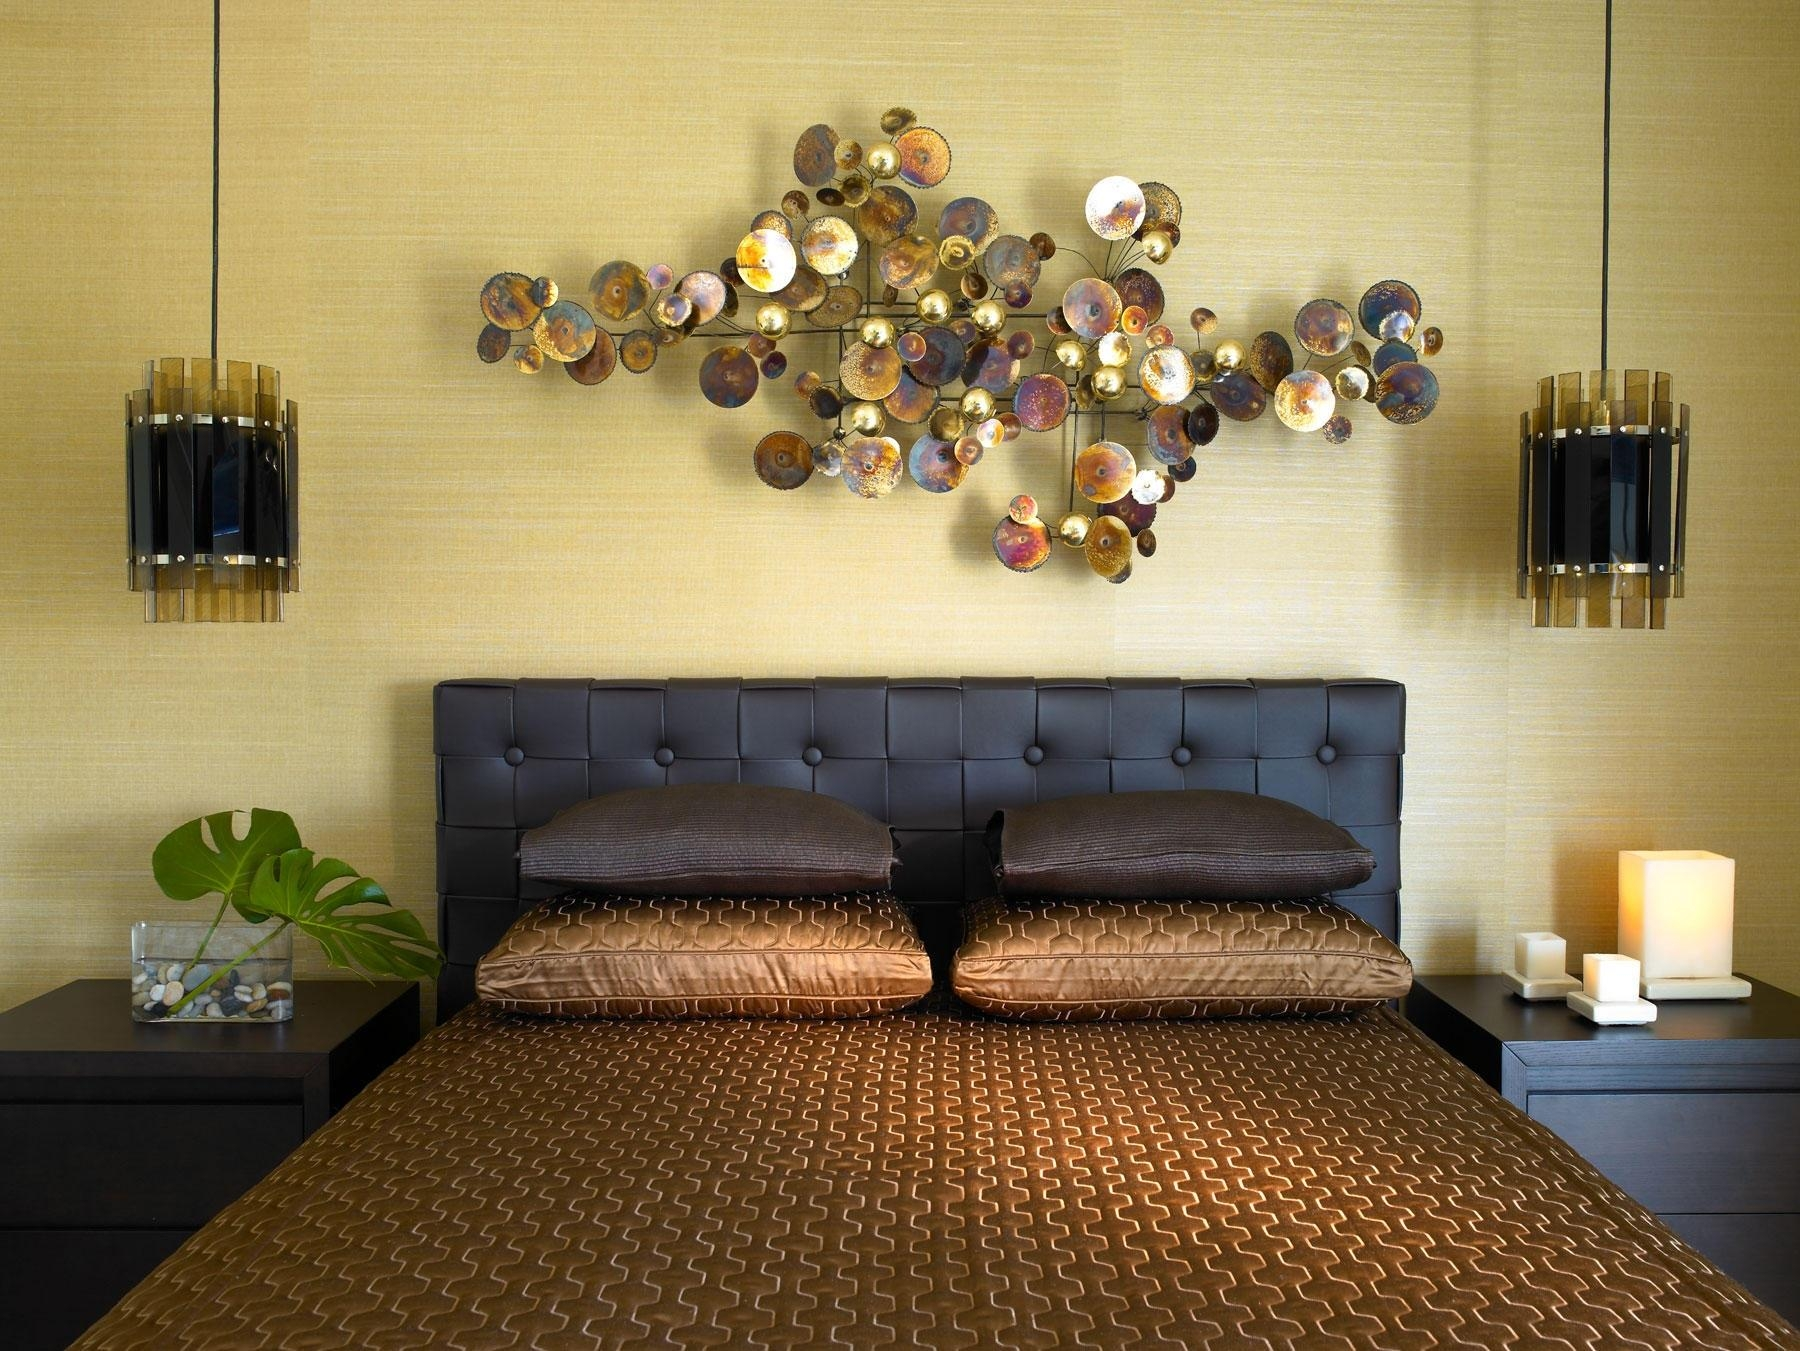 Amazing Photo Wall Arrangement Ideas Motif - The Wall Art ...